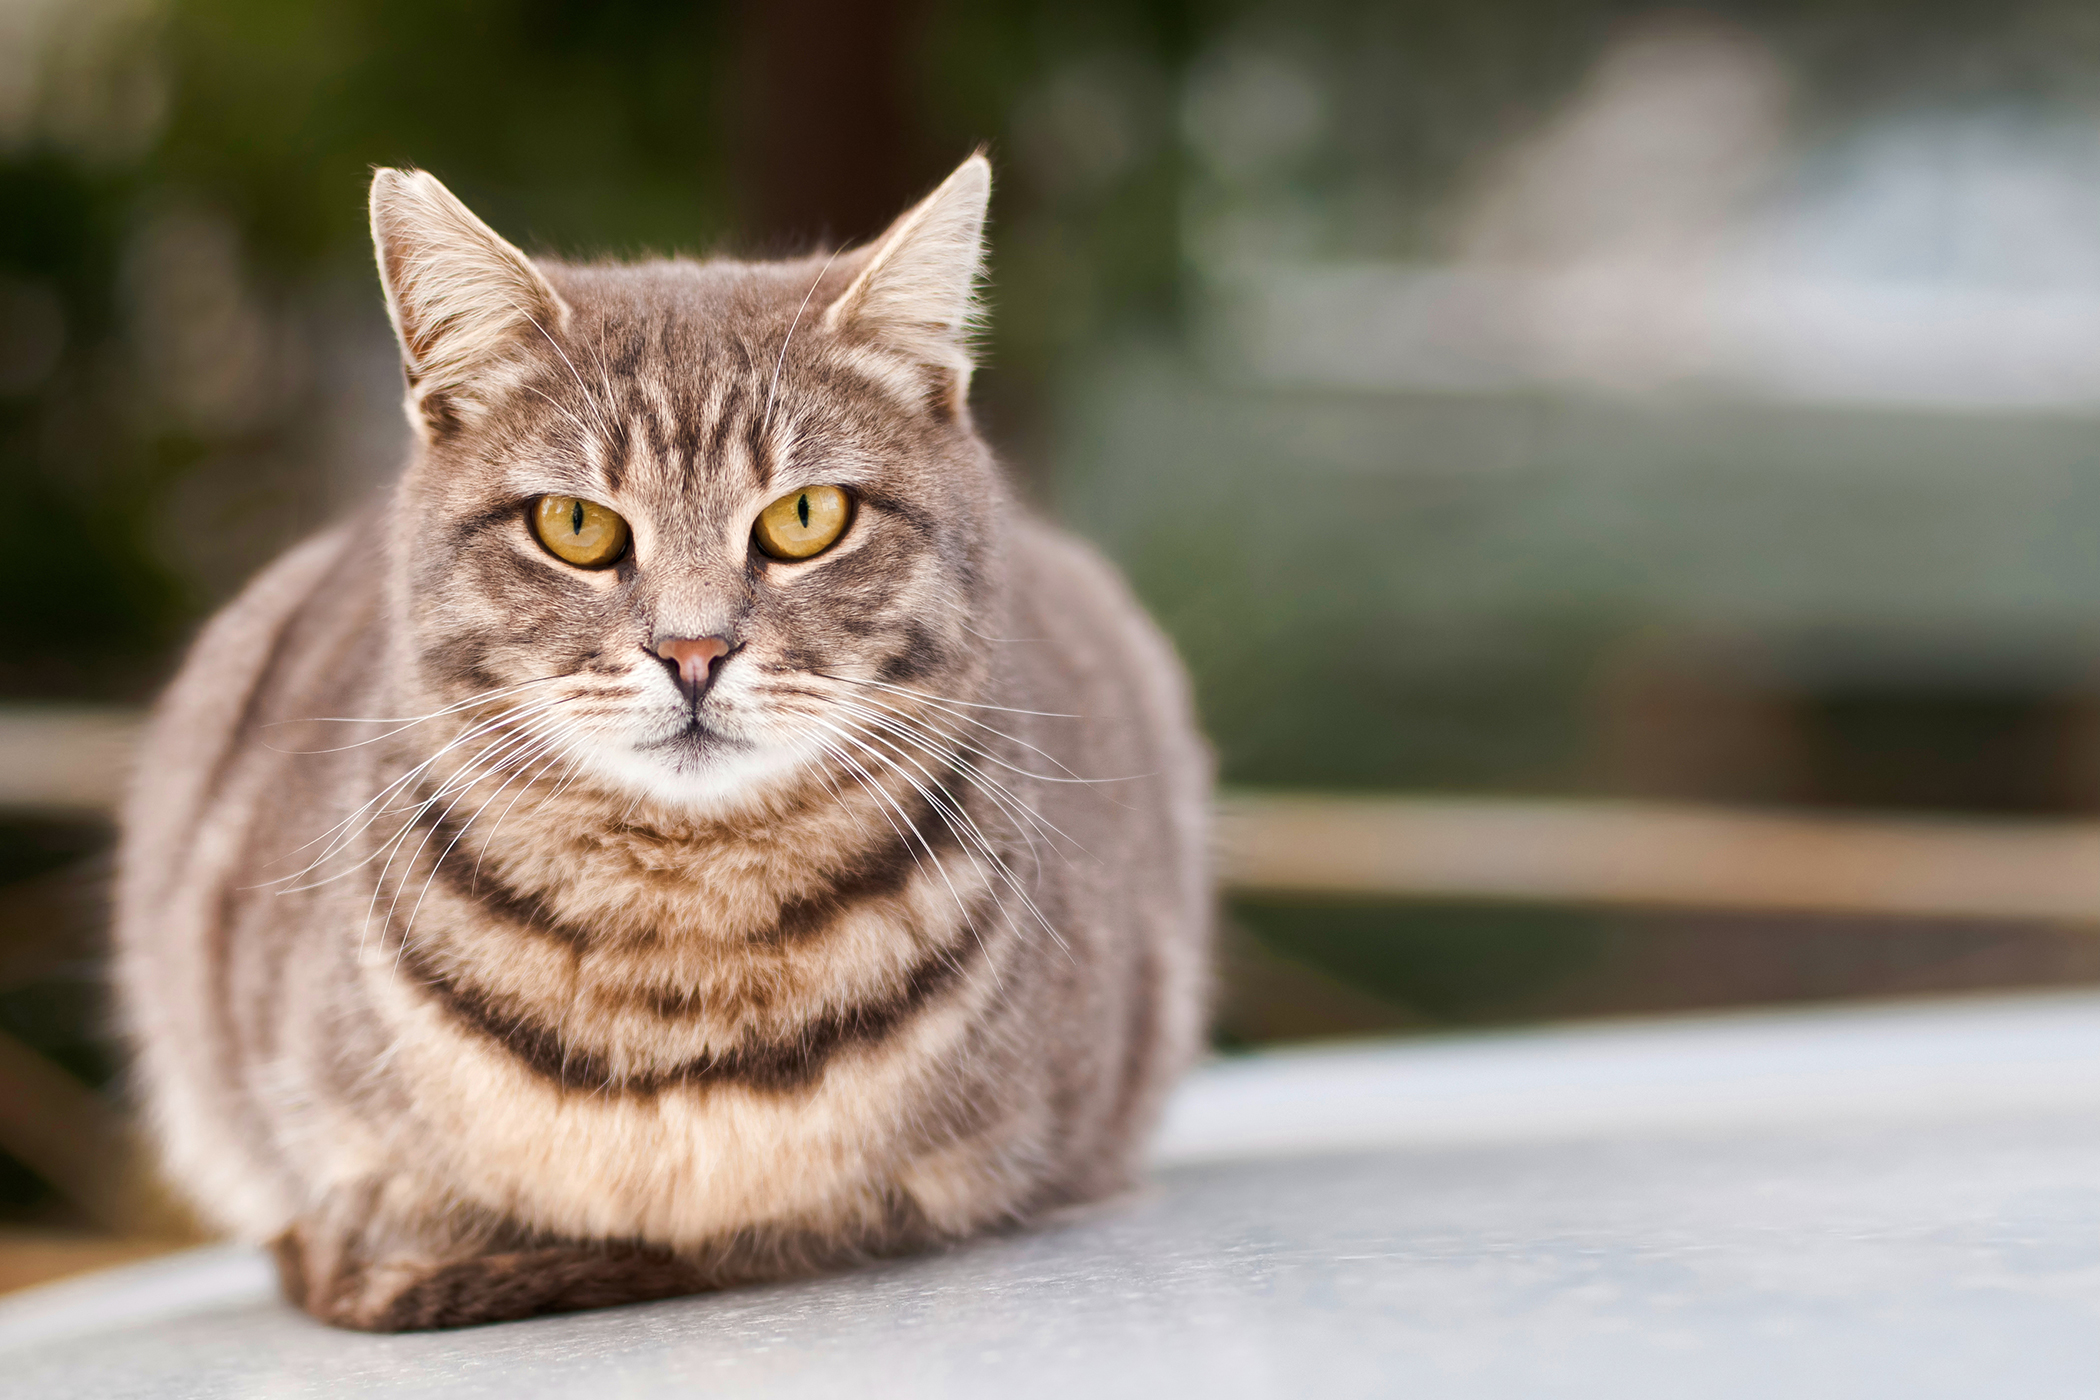 Amoxicillin Allergy in Cats - Symptoms, Causes, Diagnosis, Treatment, Recovery, Management, Cost